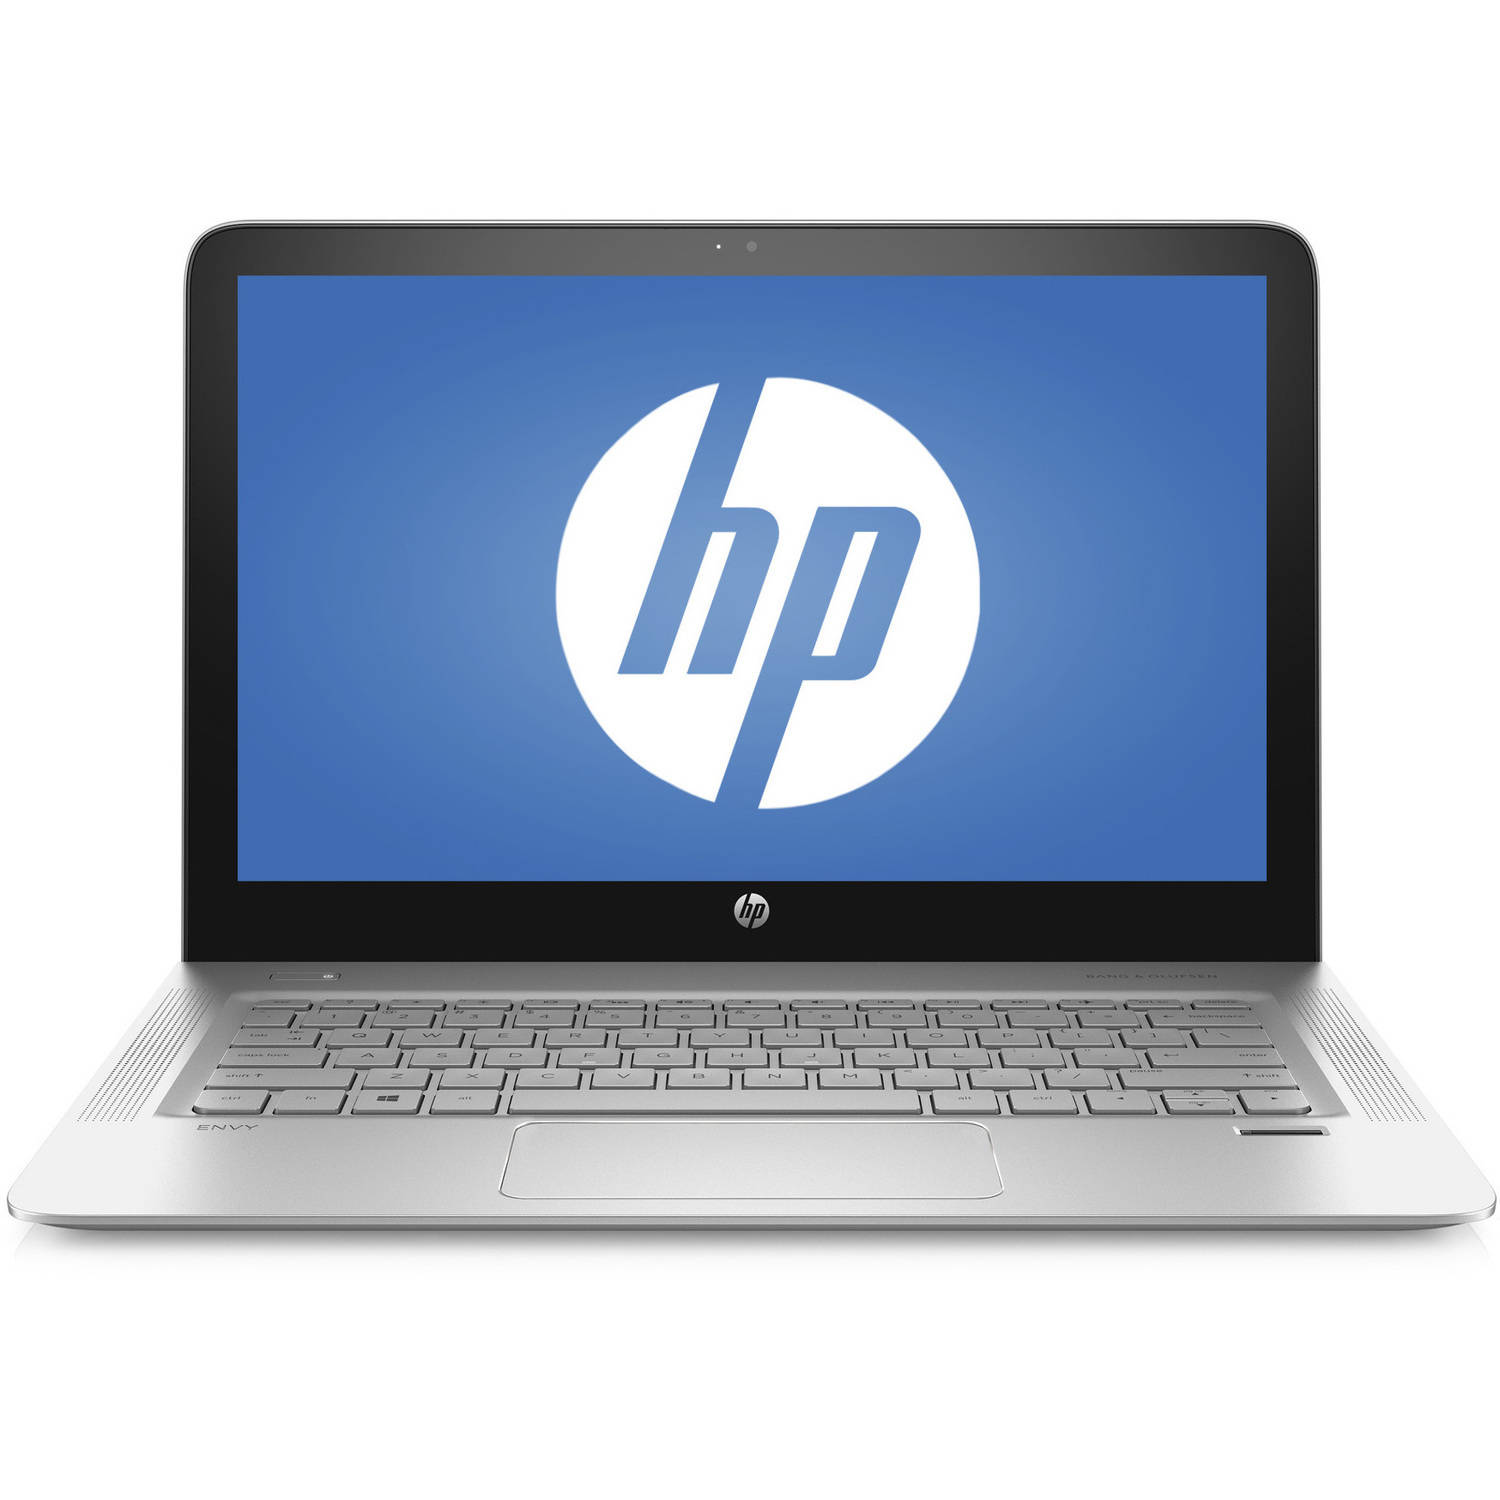 "HP ENVY 13-d040nr 13.3"" Laptop, Windows 10 Home, Intel Core i7-6500U Processor, 8GB RAM, 256GB Solid State Drive"